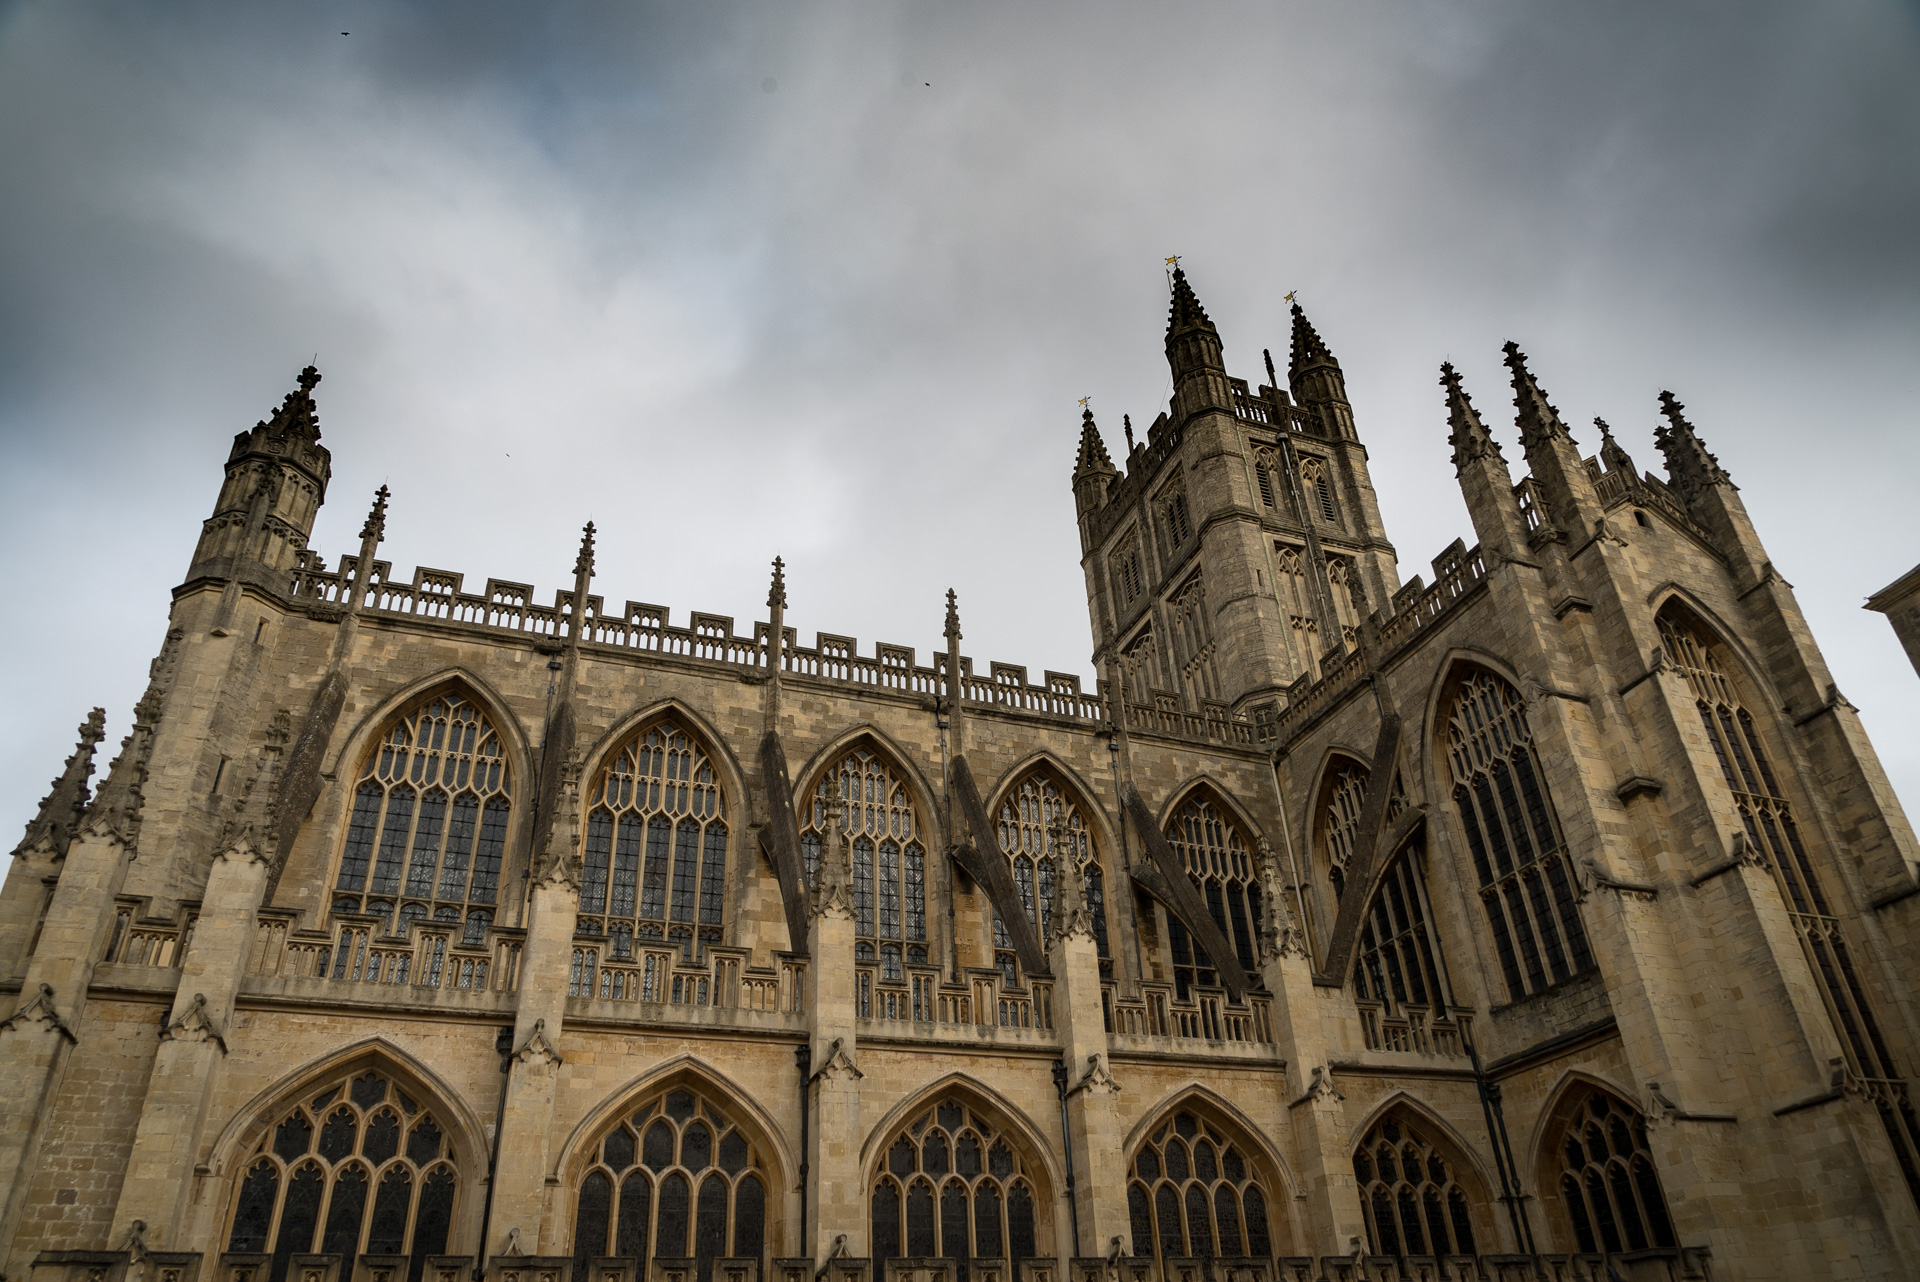 The Bath Abbey must be part of a day in Bath, England